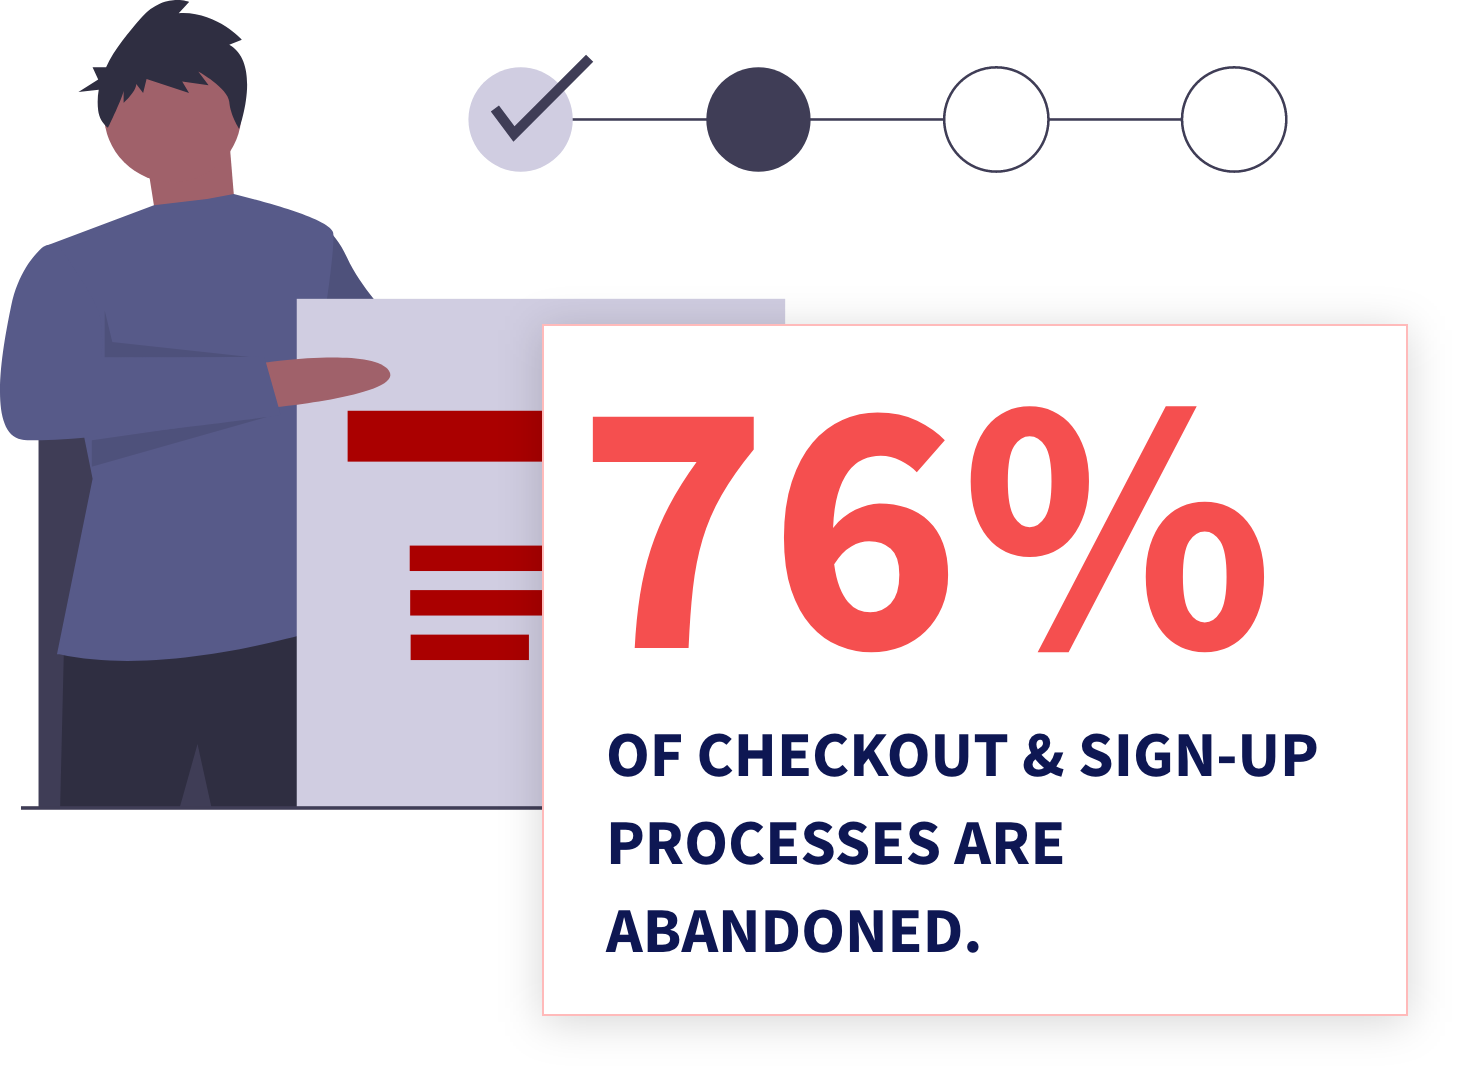 76% of online checkouts are abandoned